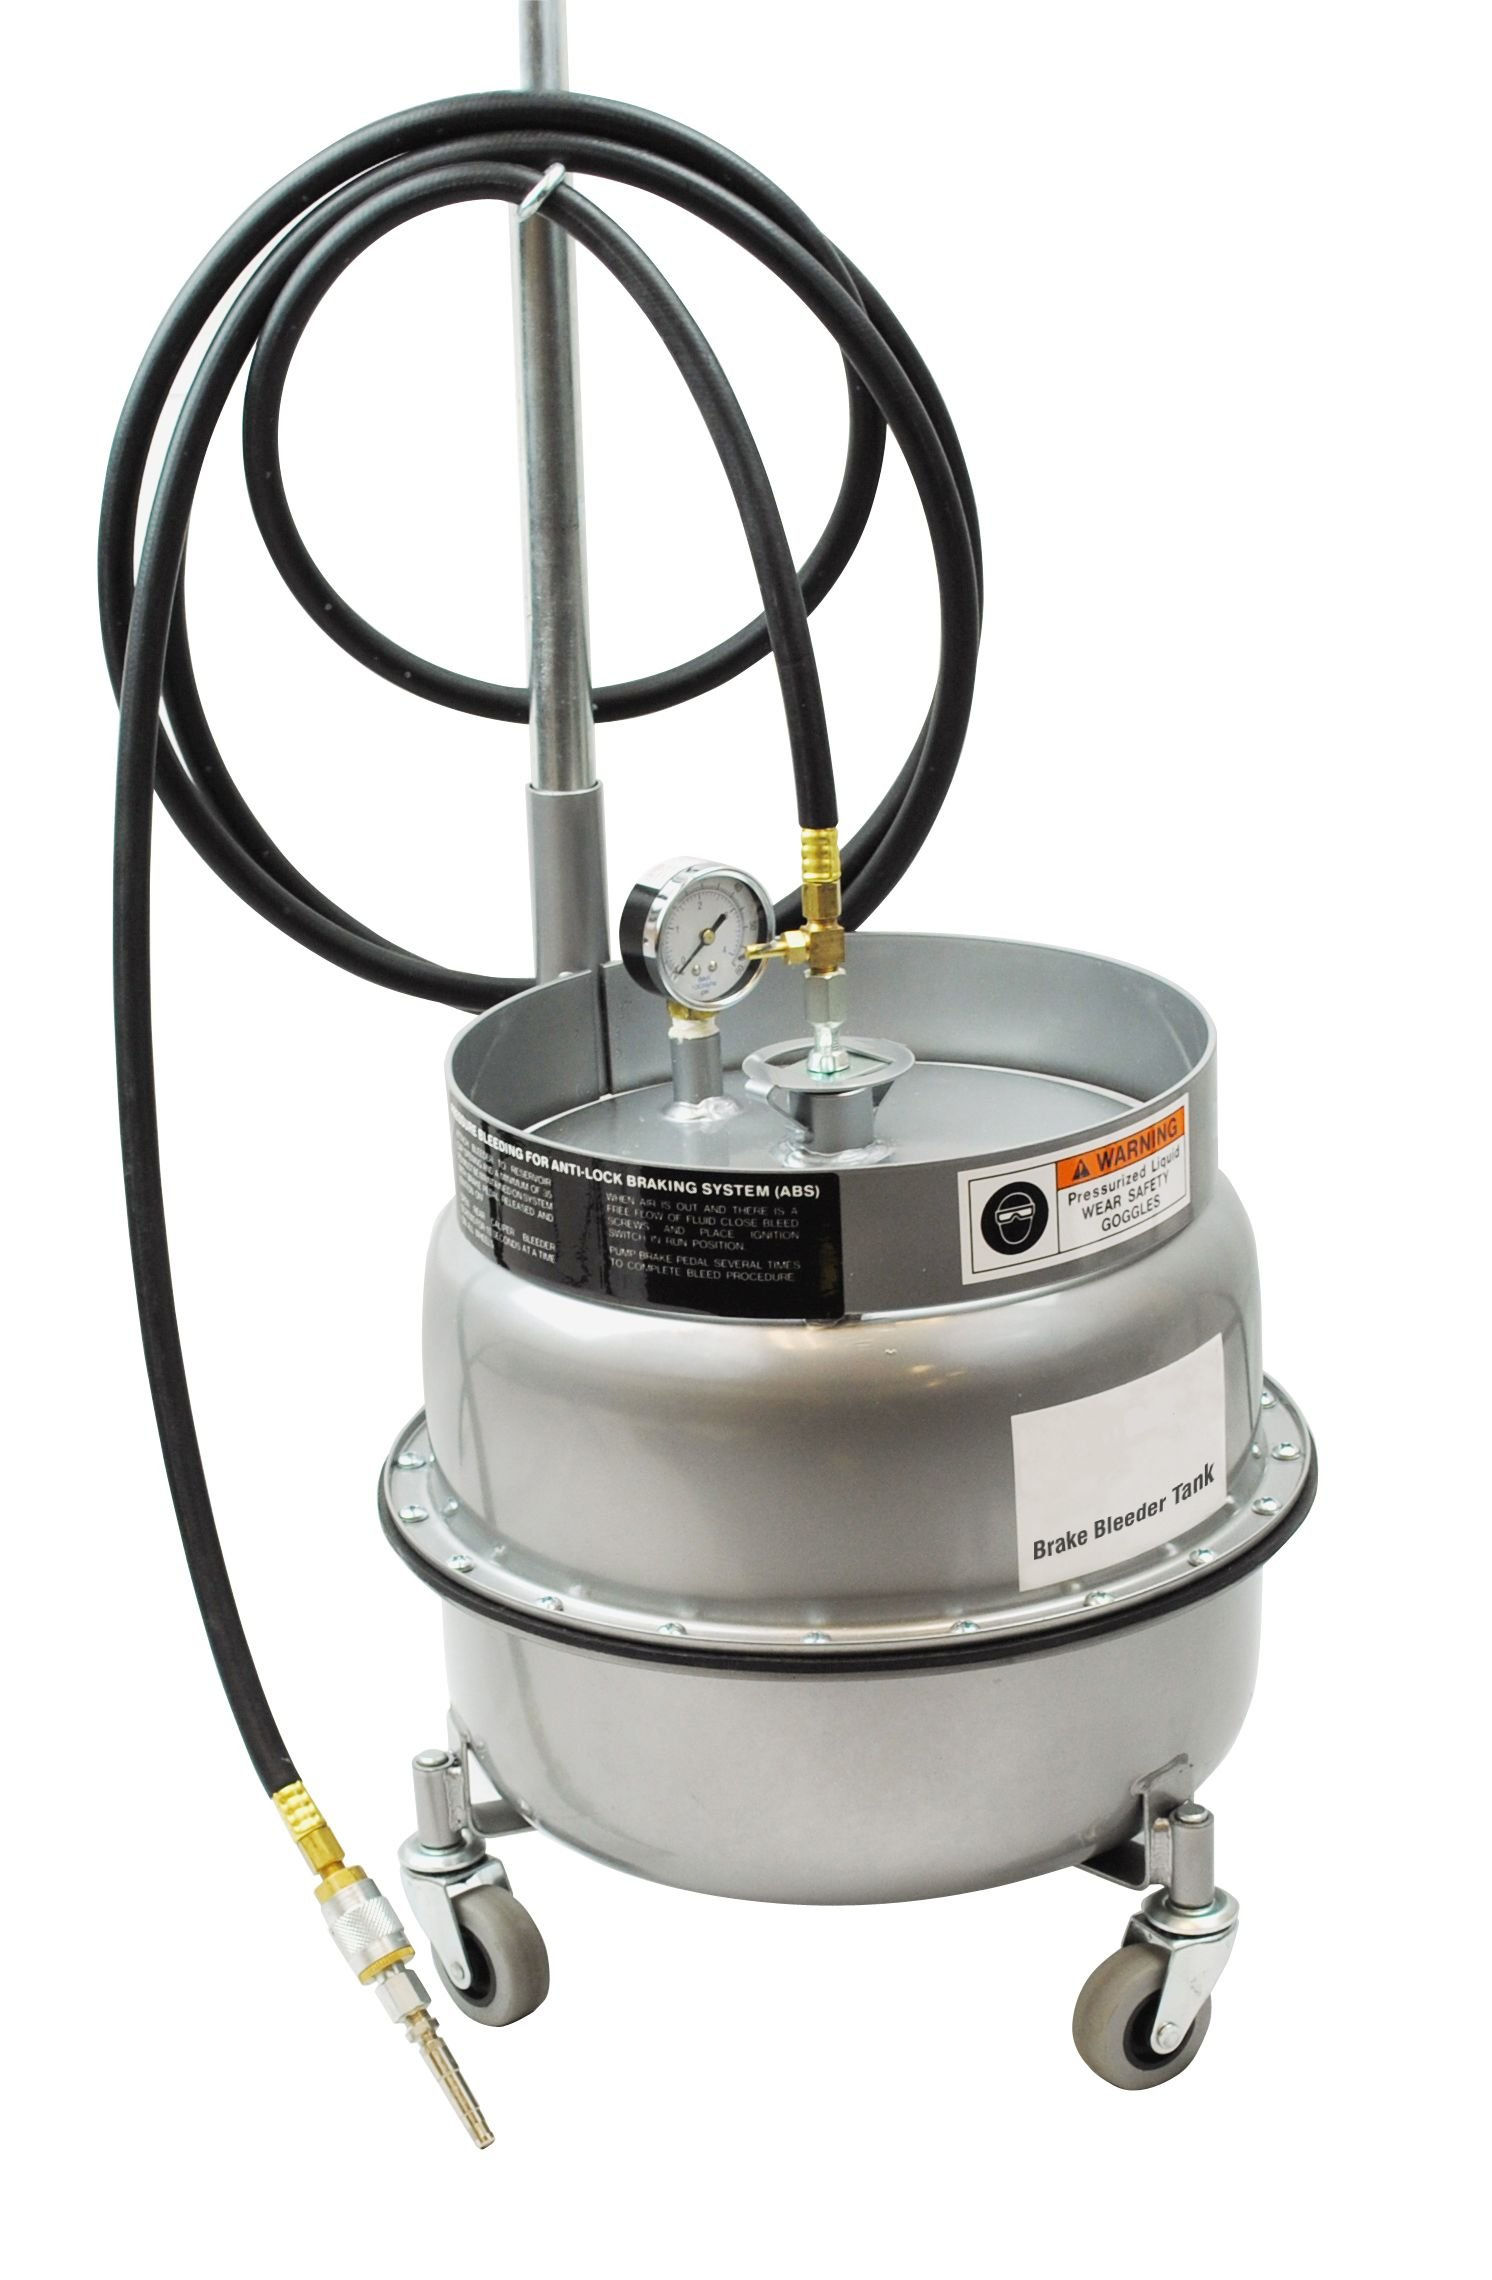 GEARWRENCH 3795D Brake Bleeder Tank by GearWrench (Image #1)